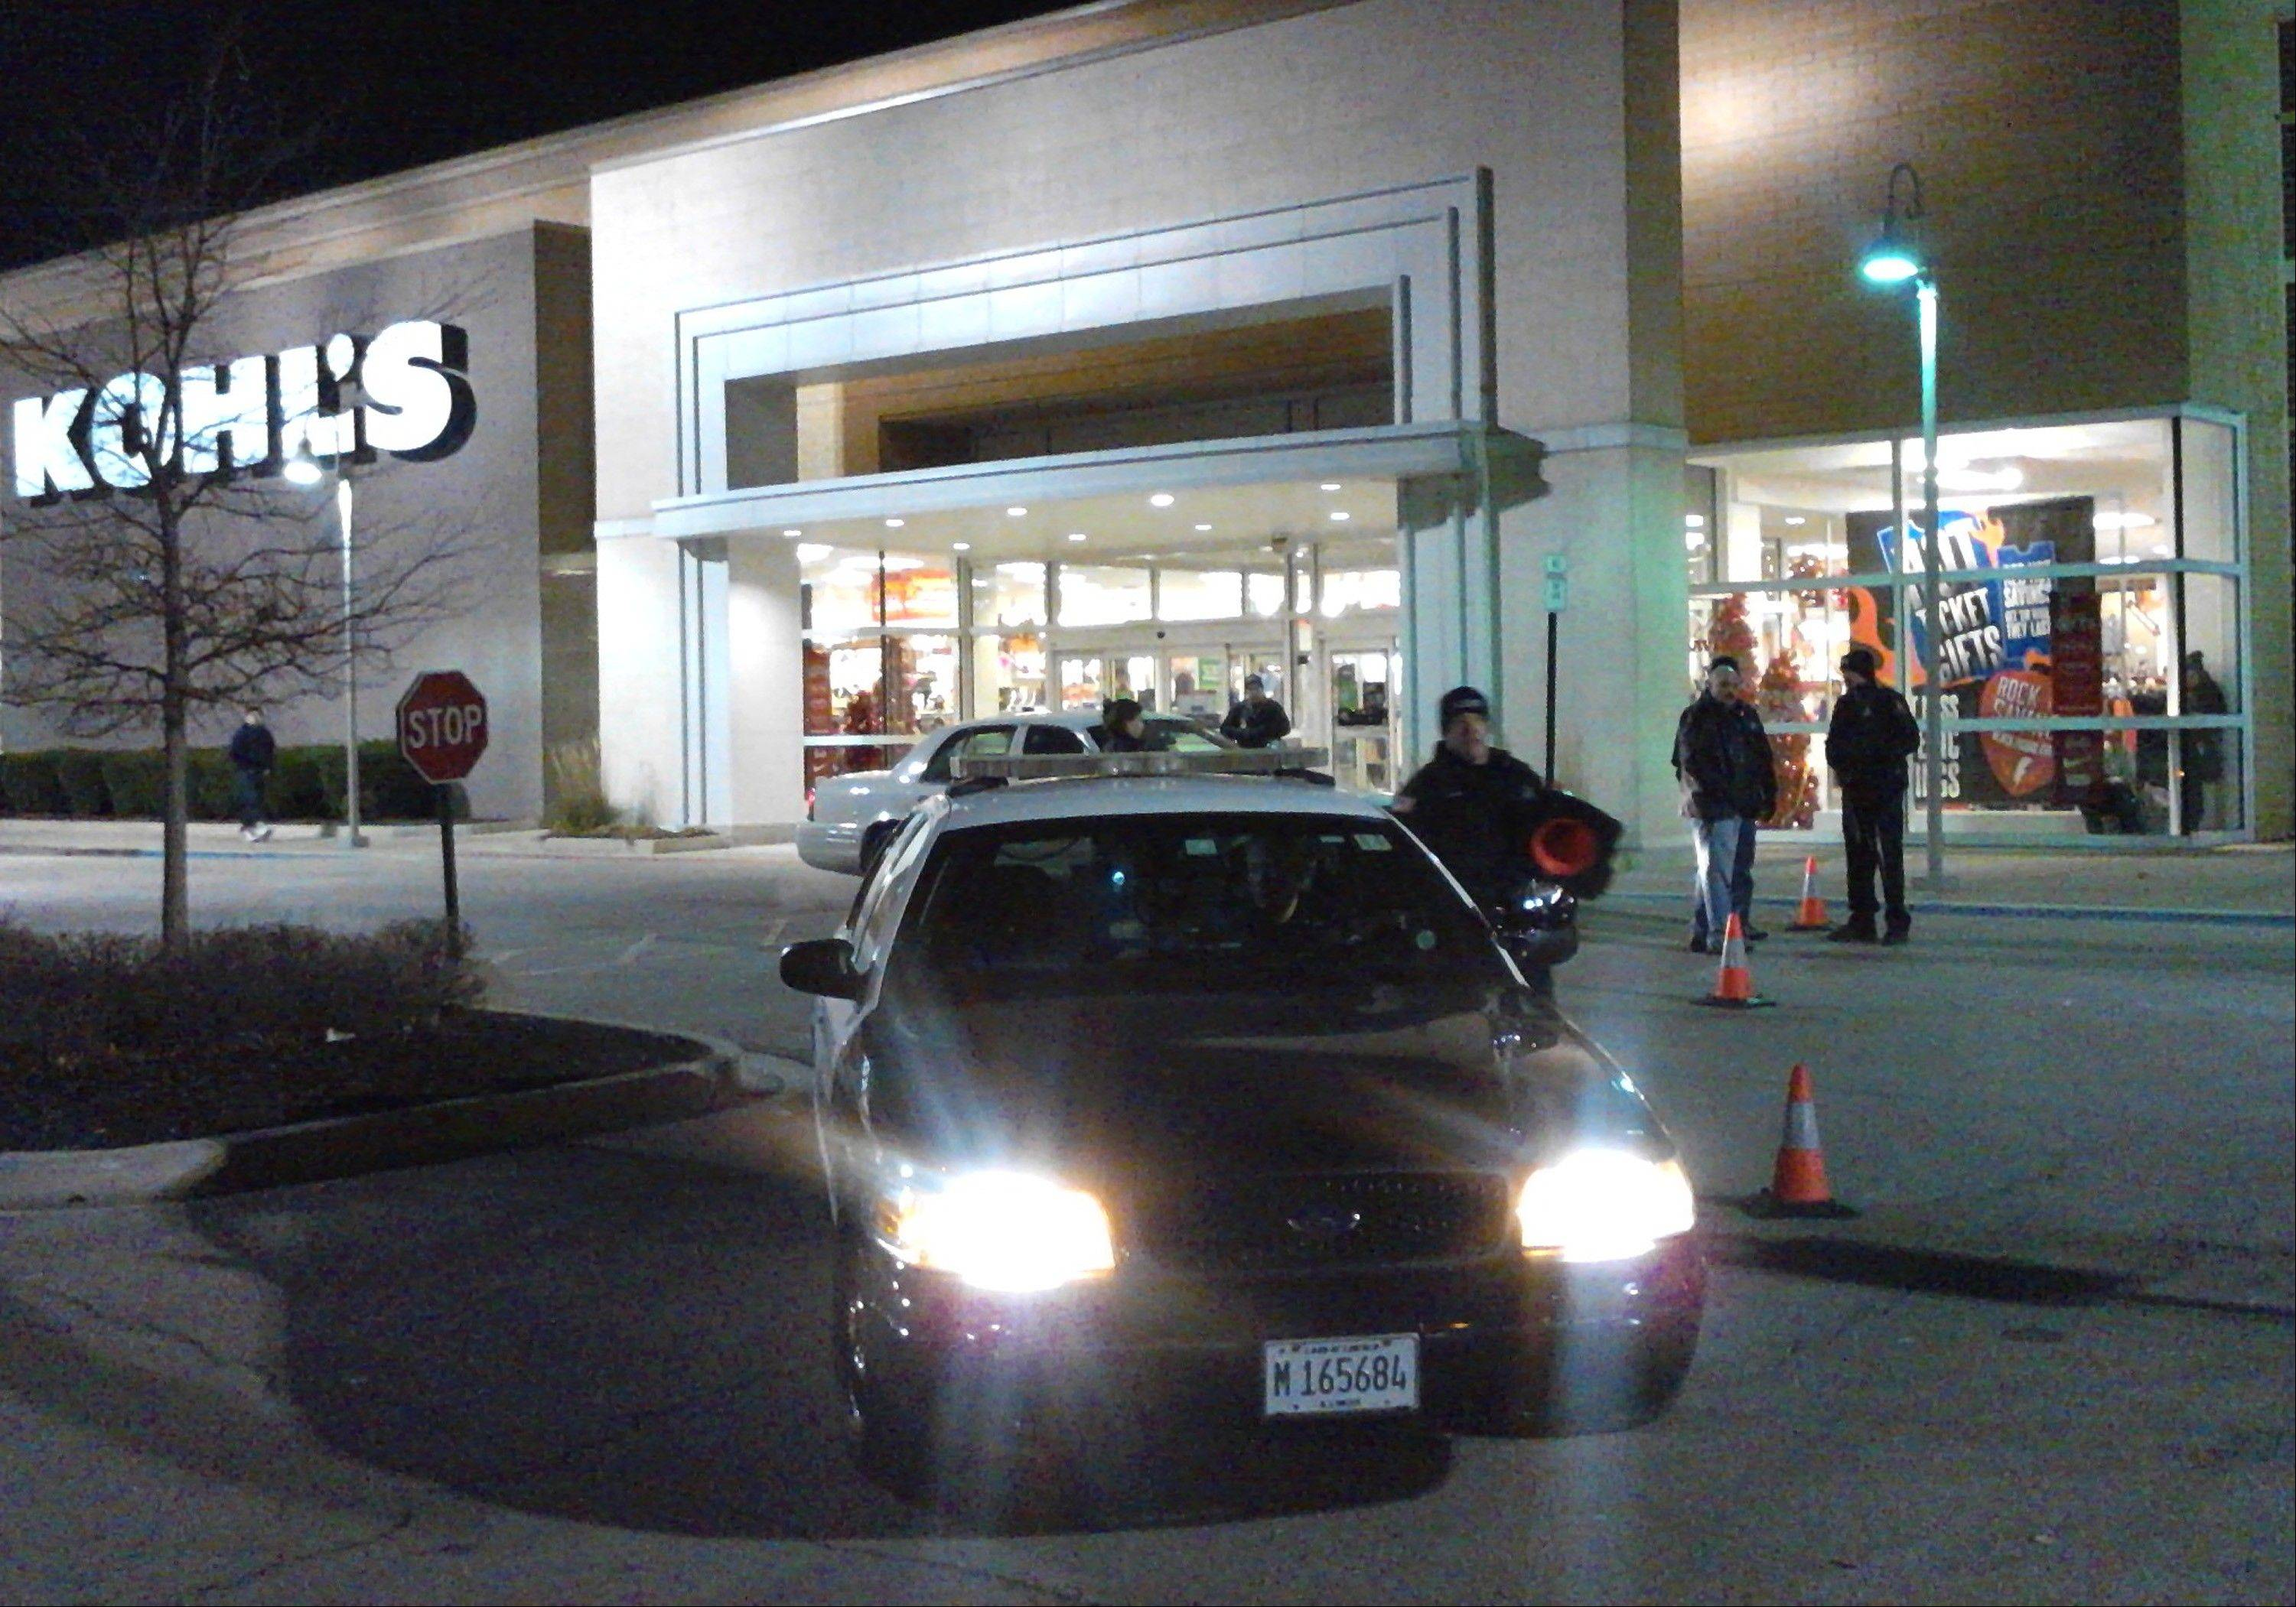 Police respond to a call Thursday at Kohl's department store on Thanksgiving in Romeoville.